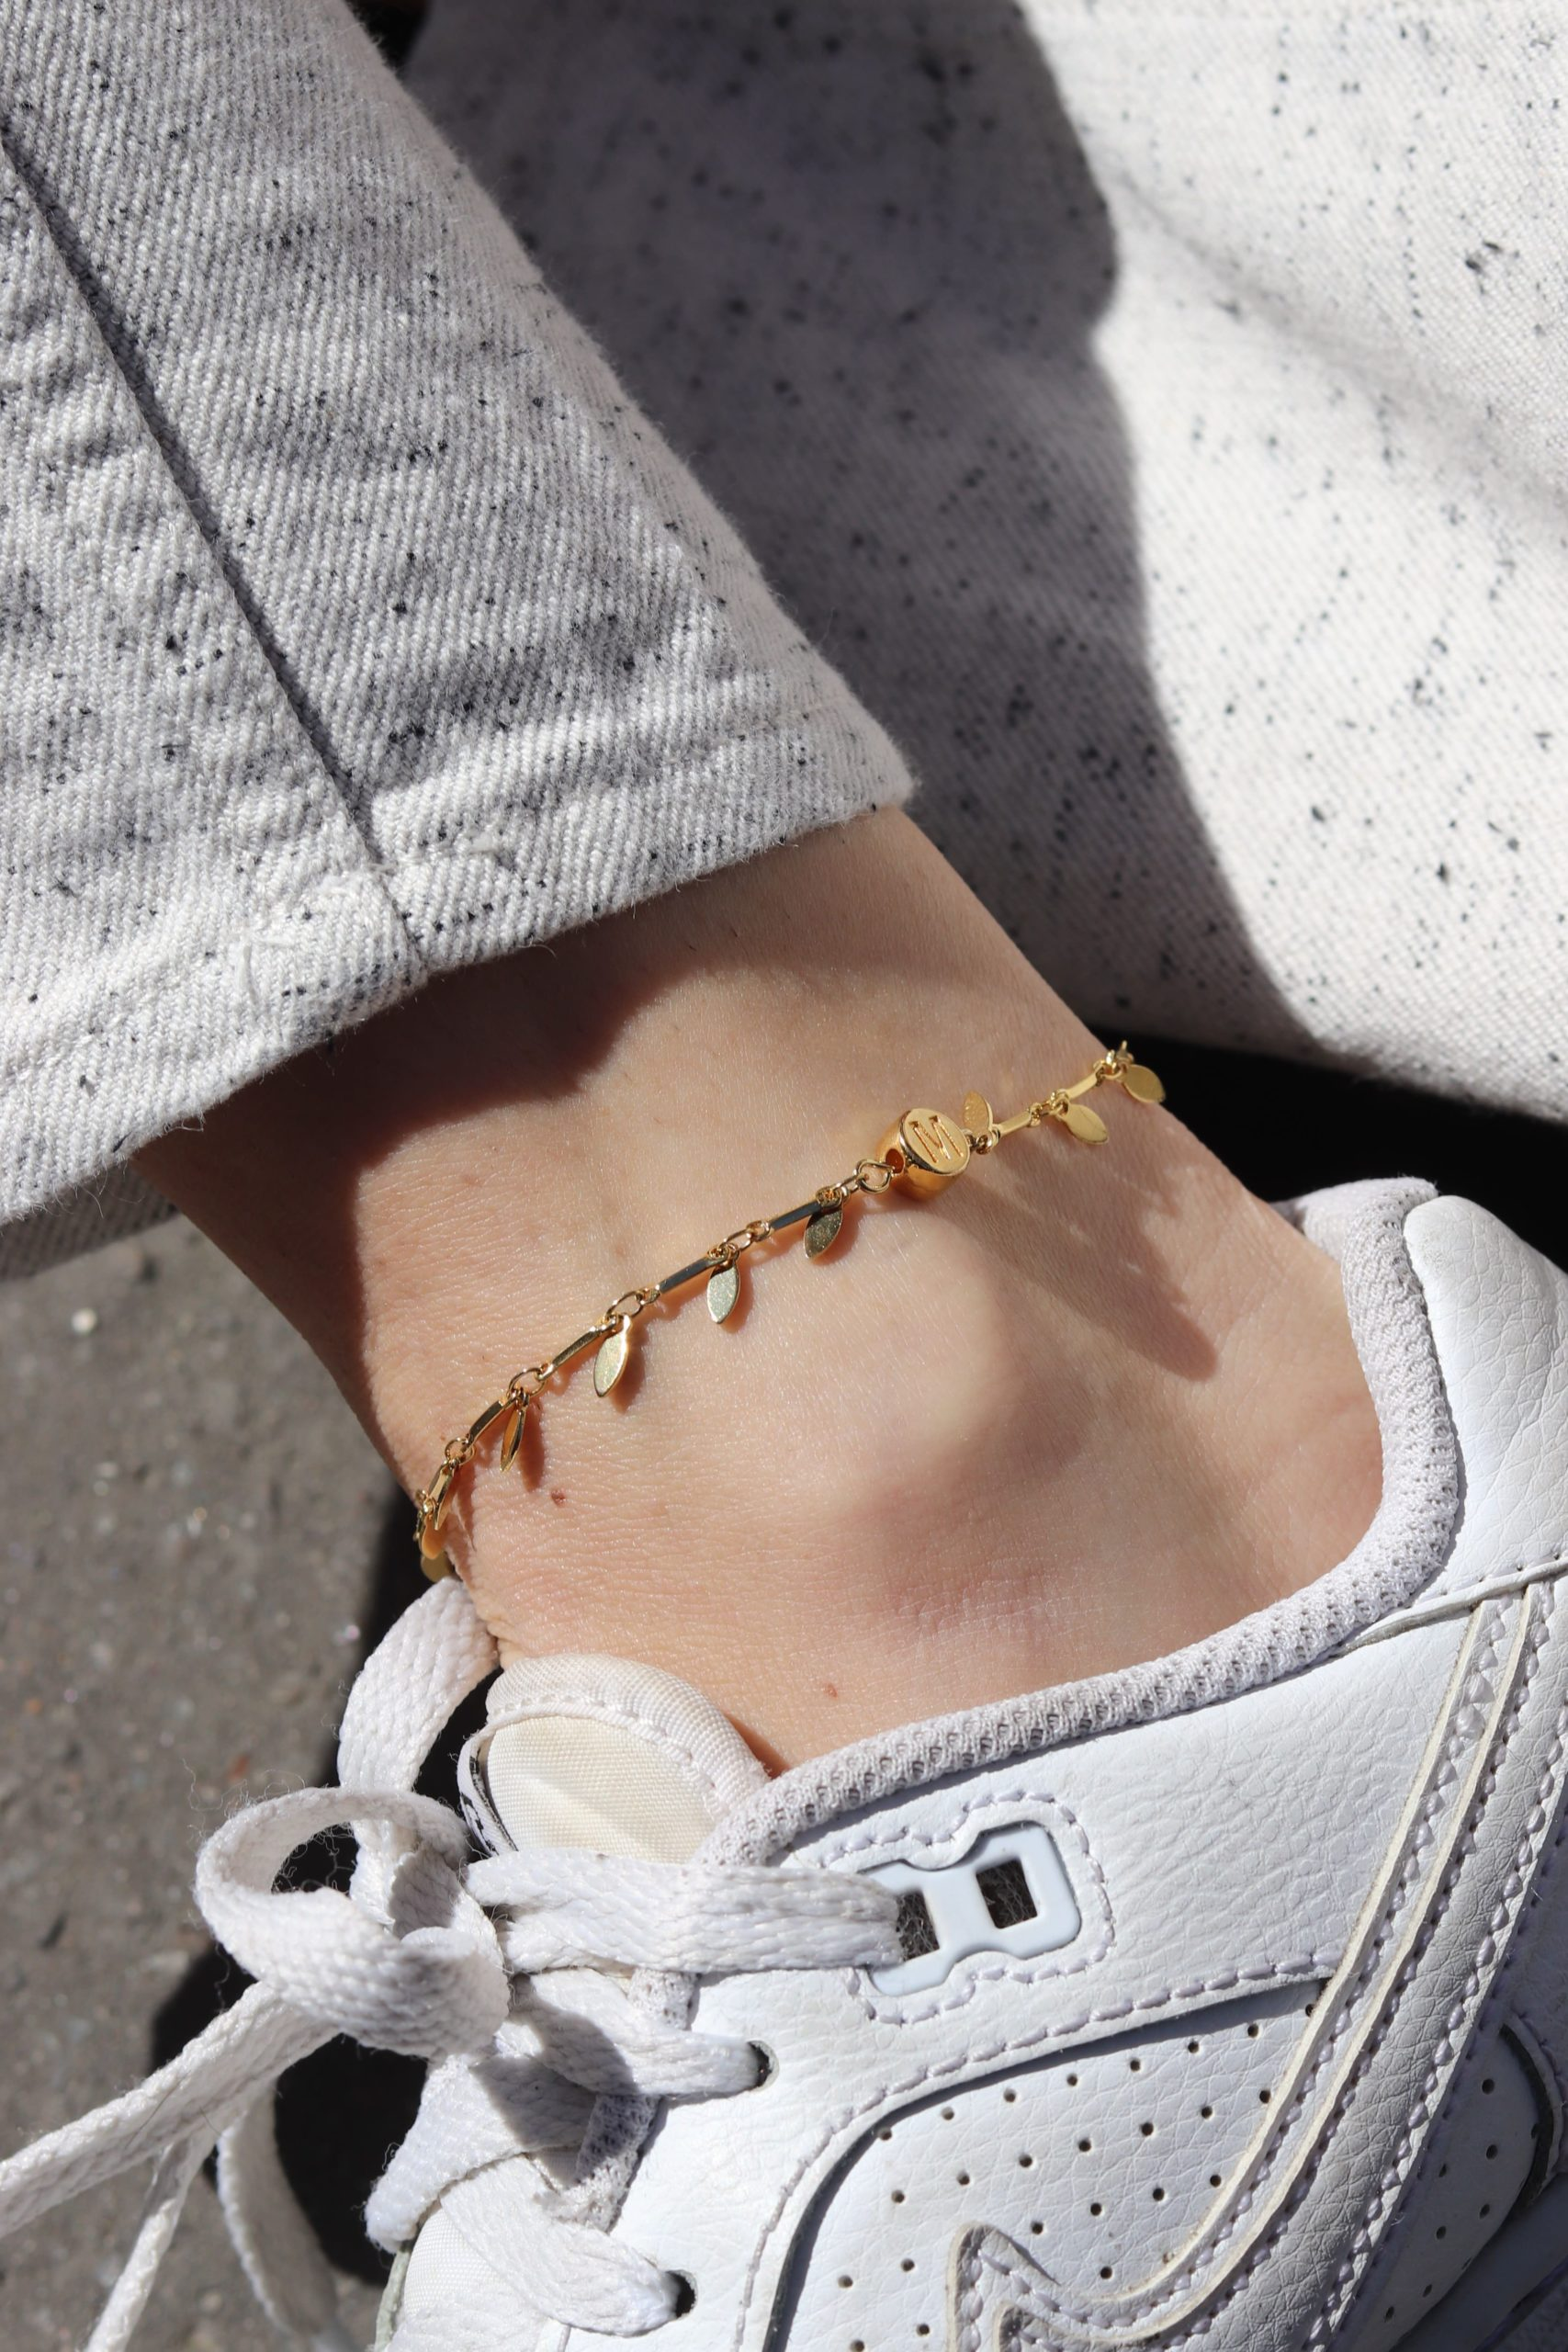 Golden ankle chain